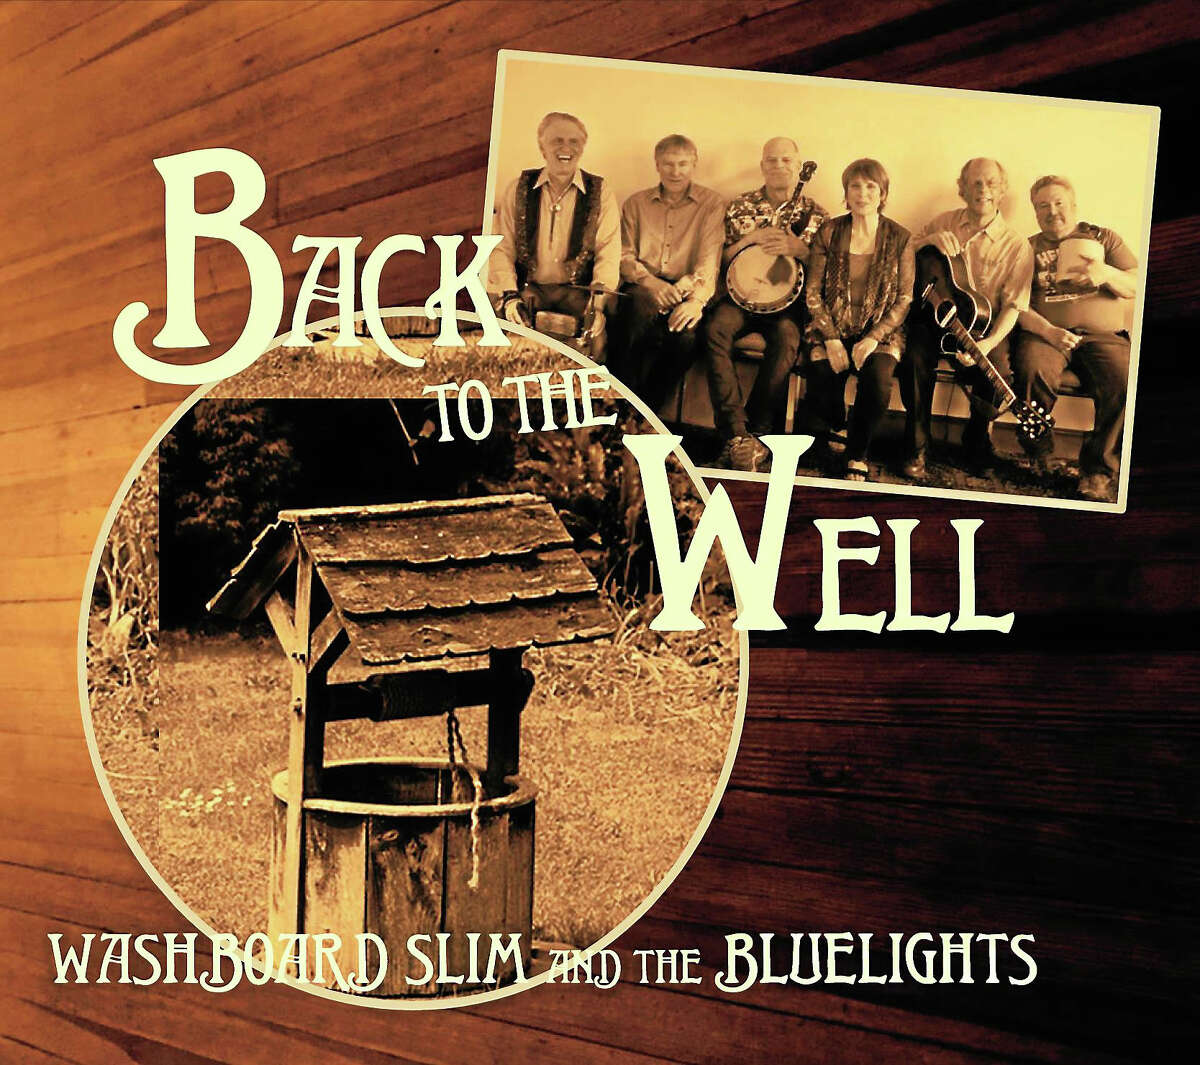 Washboard Slim and The Bluelights will celebrate its latest CD Saturday night at The Ballroom at The Outer Space in Hamden.